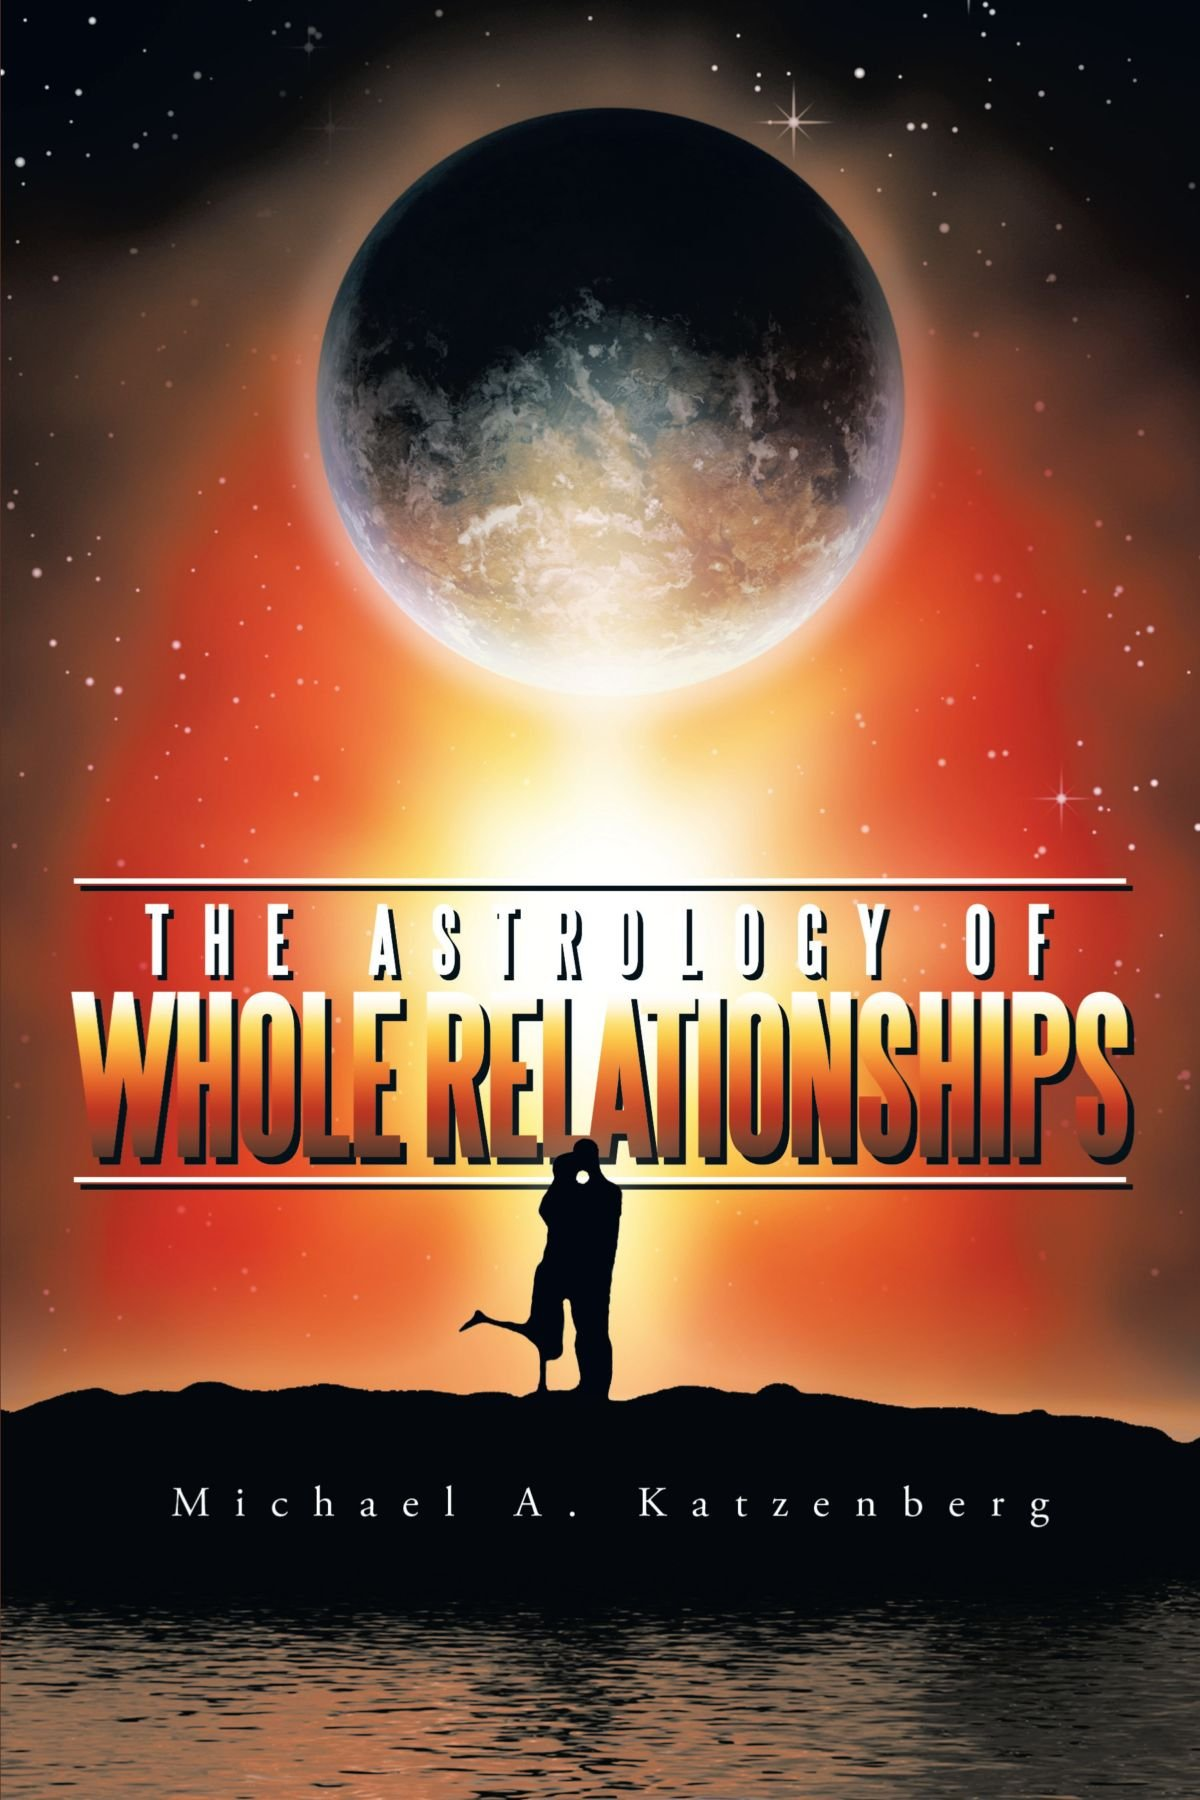 The Astrology of Whole Relationships ebook